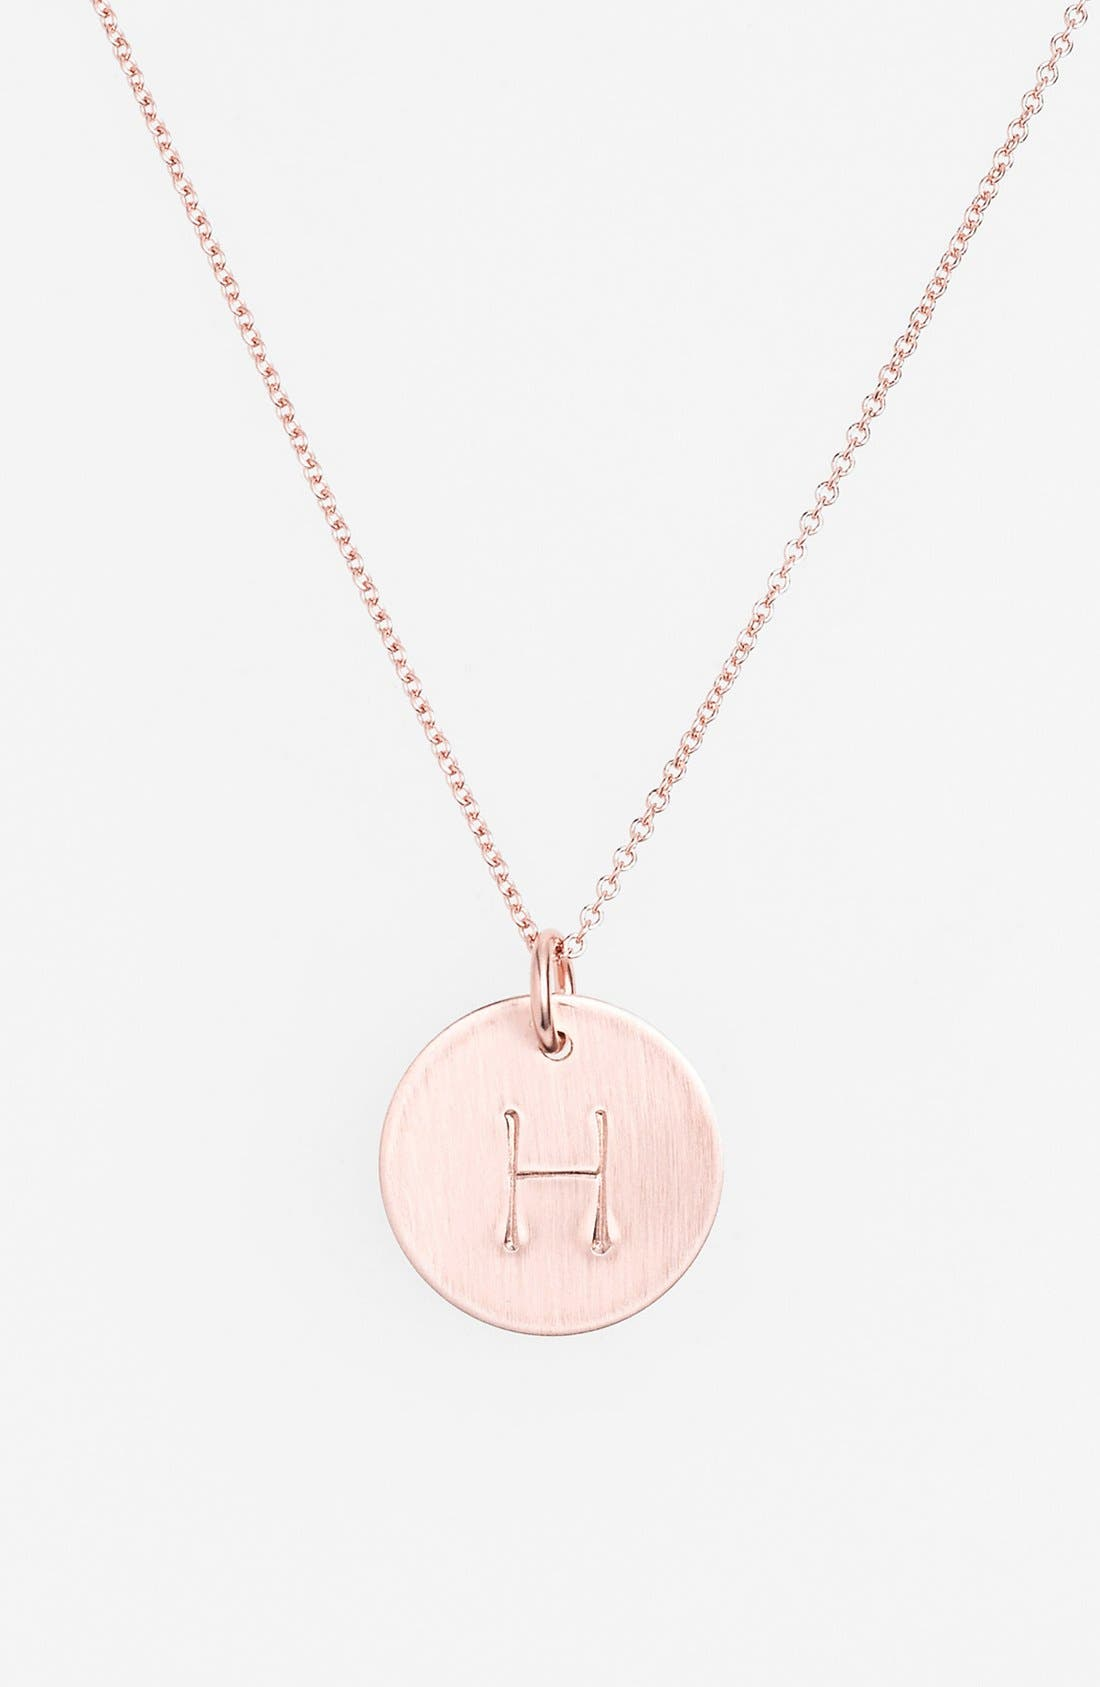 14k-Rose Gold Fill Initial Disc Necklace,                             Main thumbnail 8, color,